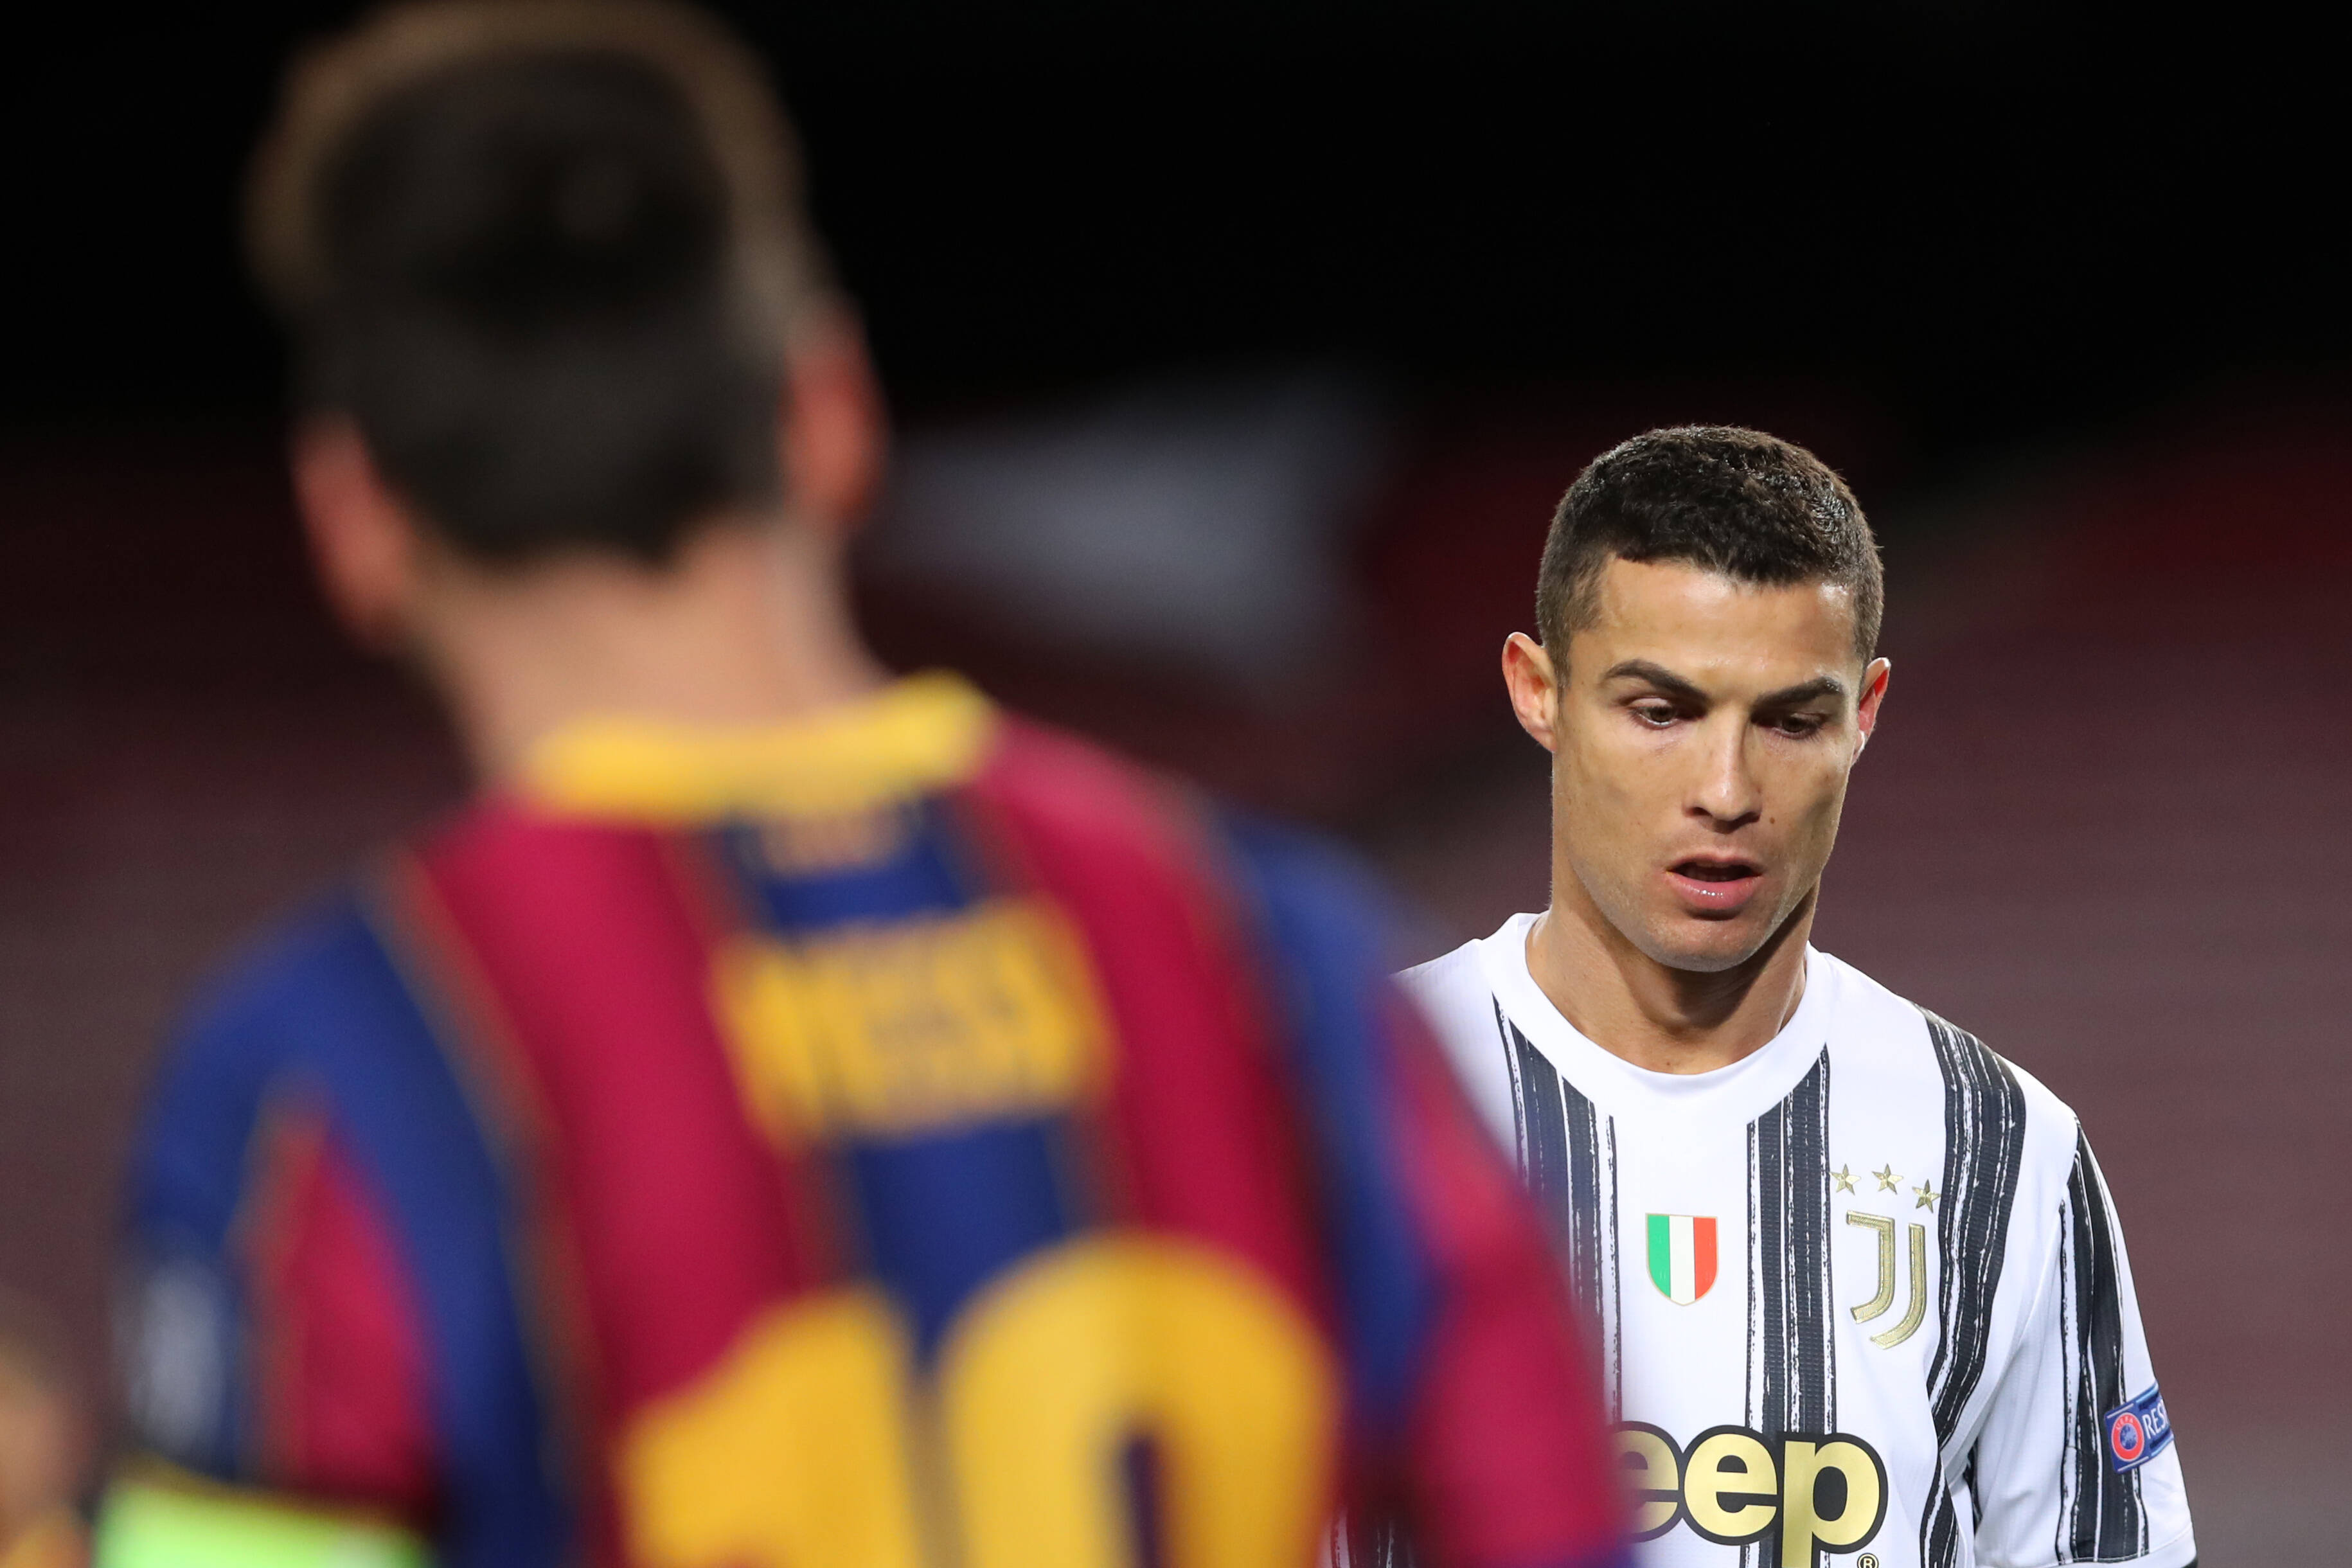 PSG dreaming of Cristiano Ronaldo and Lionel Messi partnership amid Kylian Mbappe contract stand-off